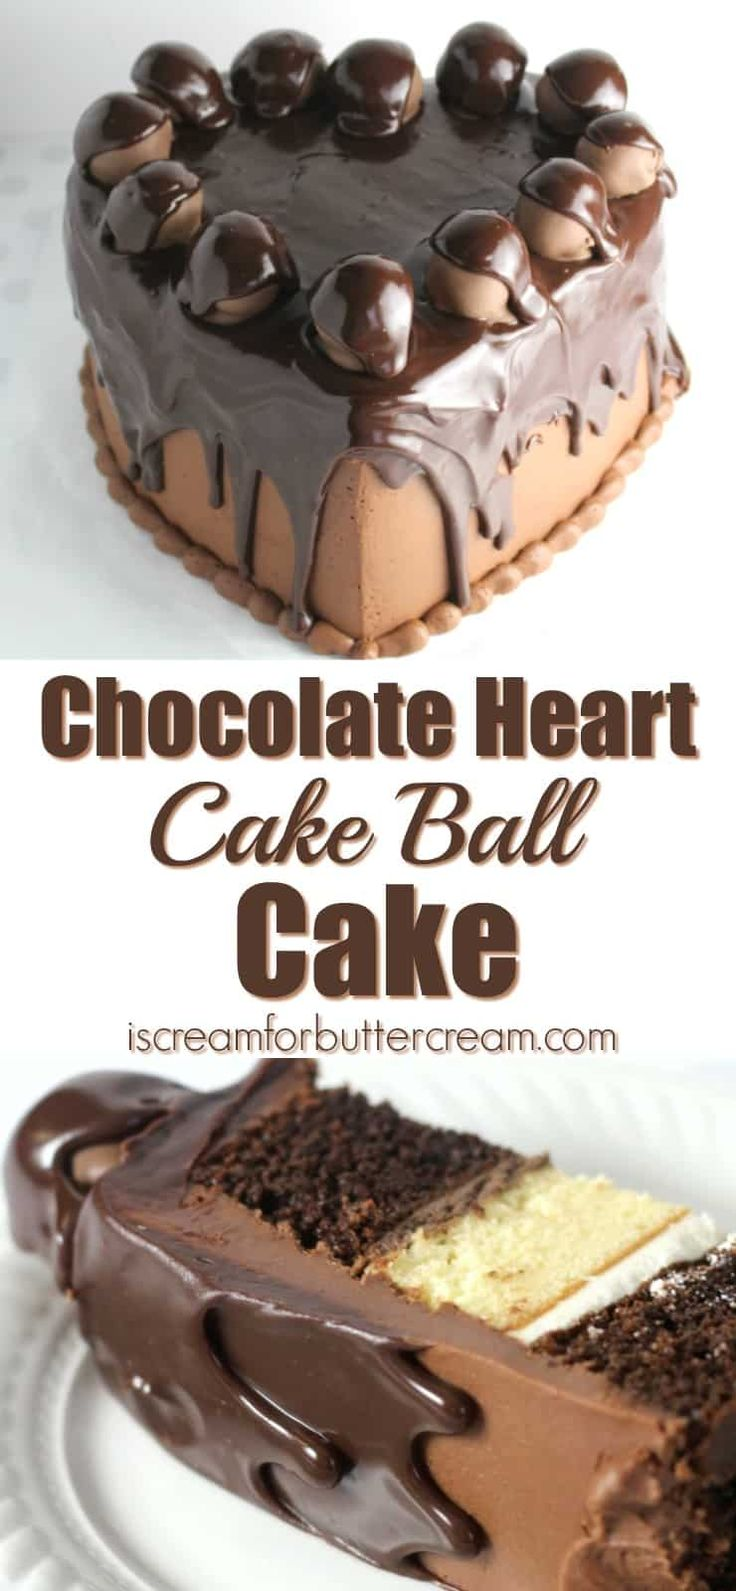 This rich chocolate cake is covered in chocolate buttercream, topped with chocolate covered cake balls, then covered in pourable ganache. via @KaraJaneB